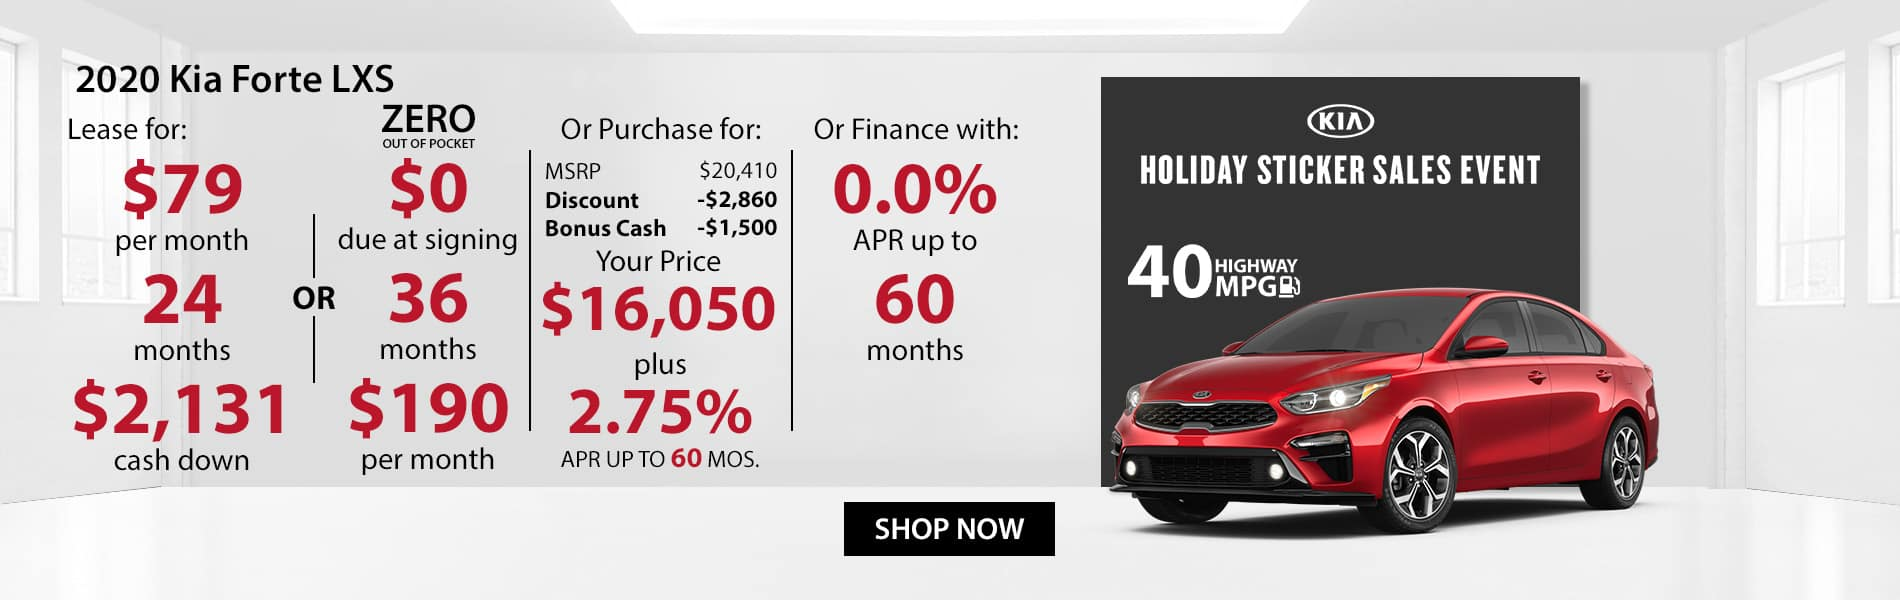 Special offer on 2020 Kia Forte LXS Lease for $79 with $2,131 down or Purchase for $16,050 with 2.75% APR or get 0% APR for 60 months.